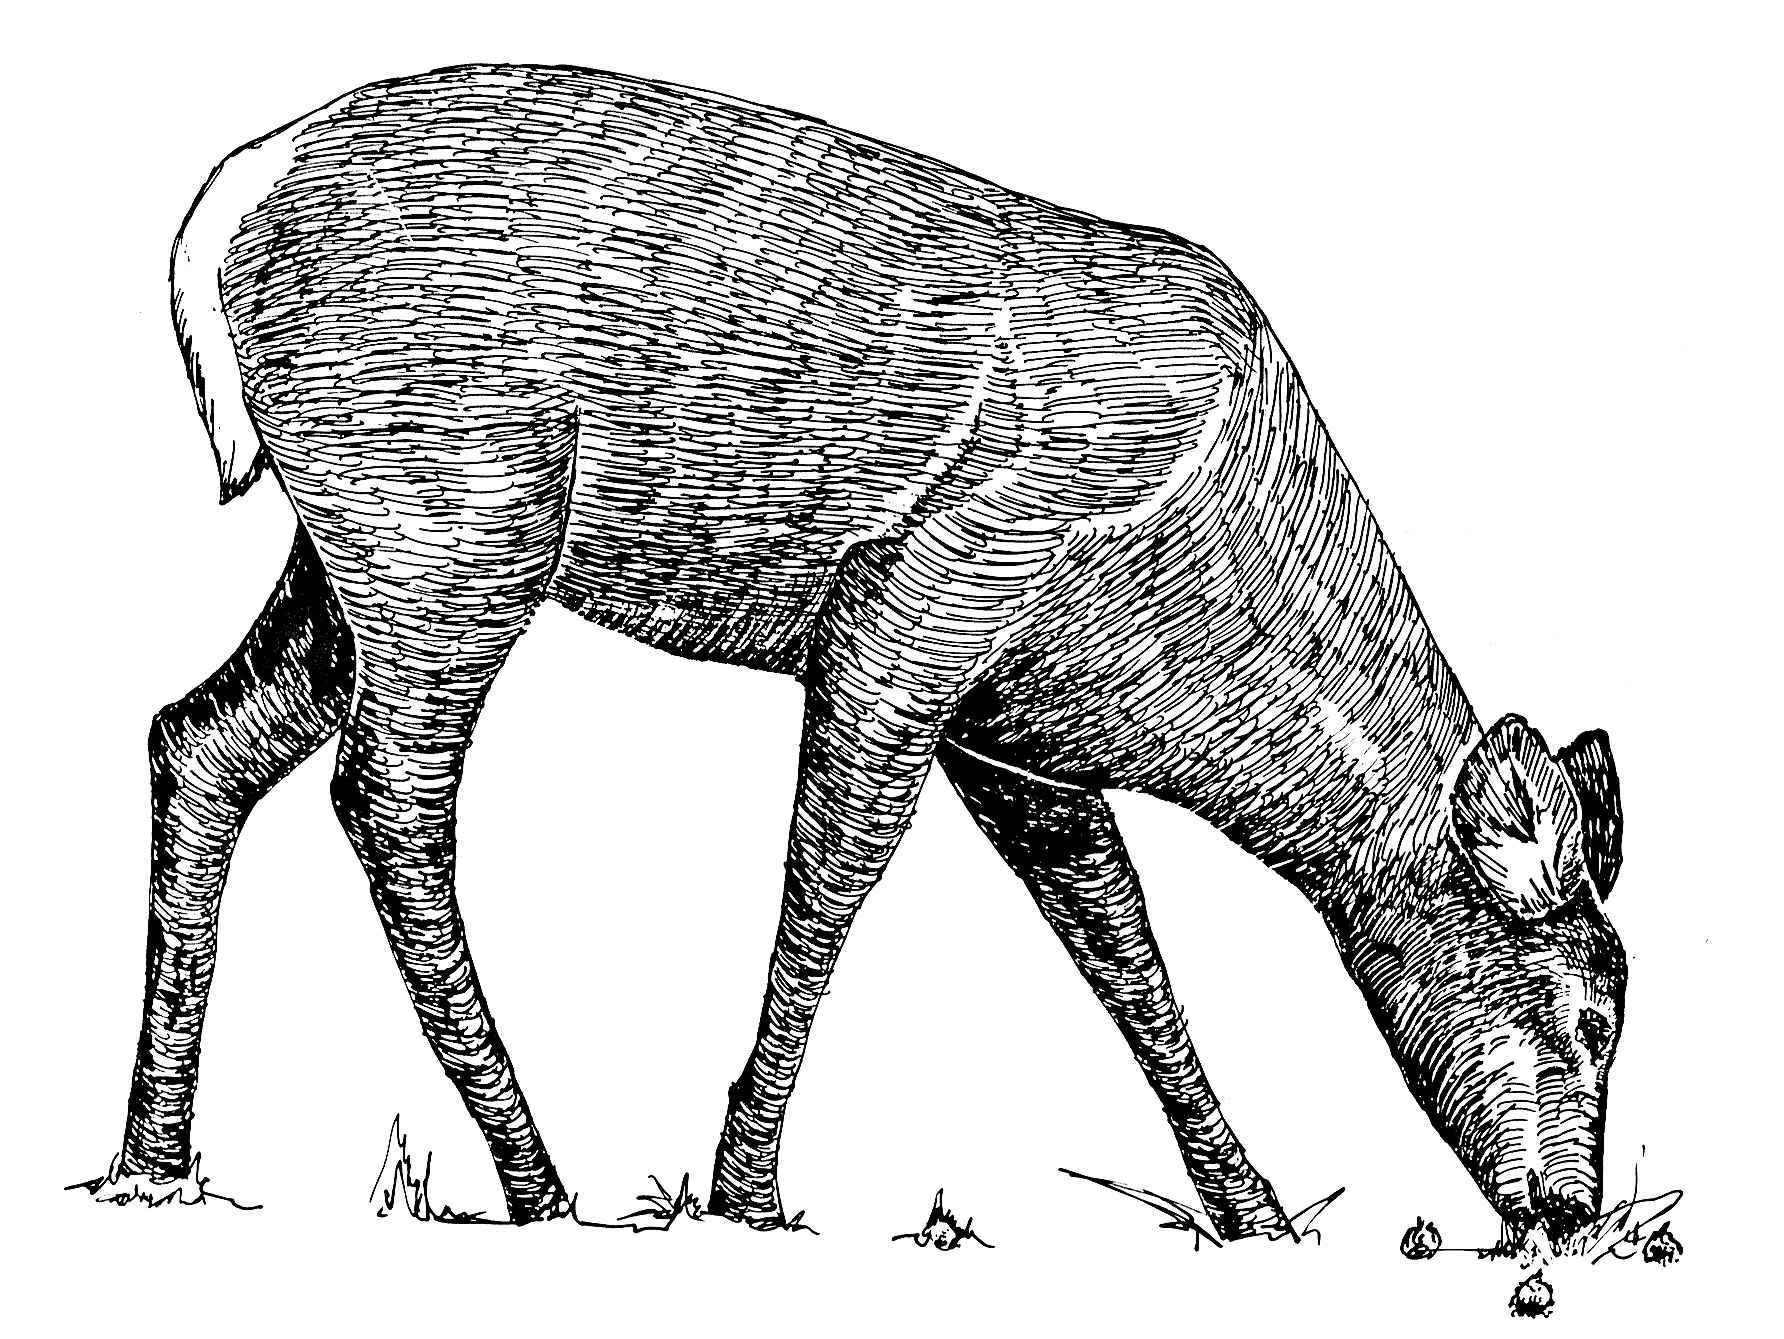 Line Drawing : File animal line art drawing g wikimedia commons